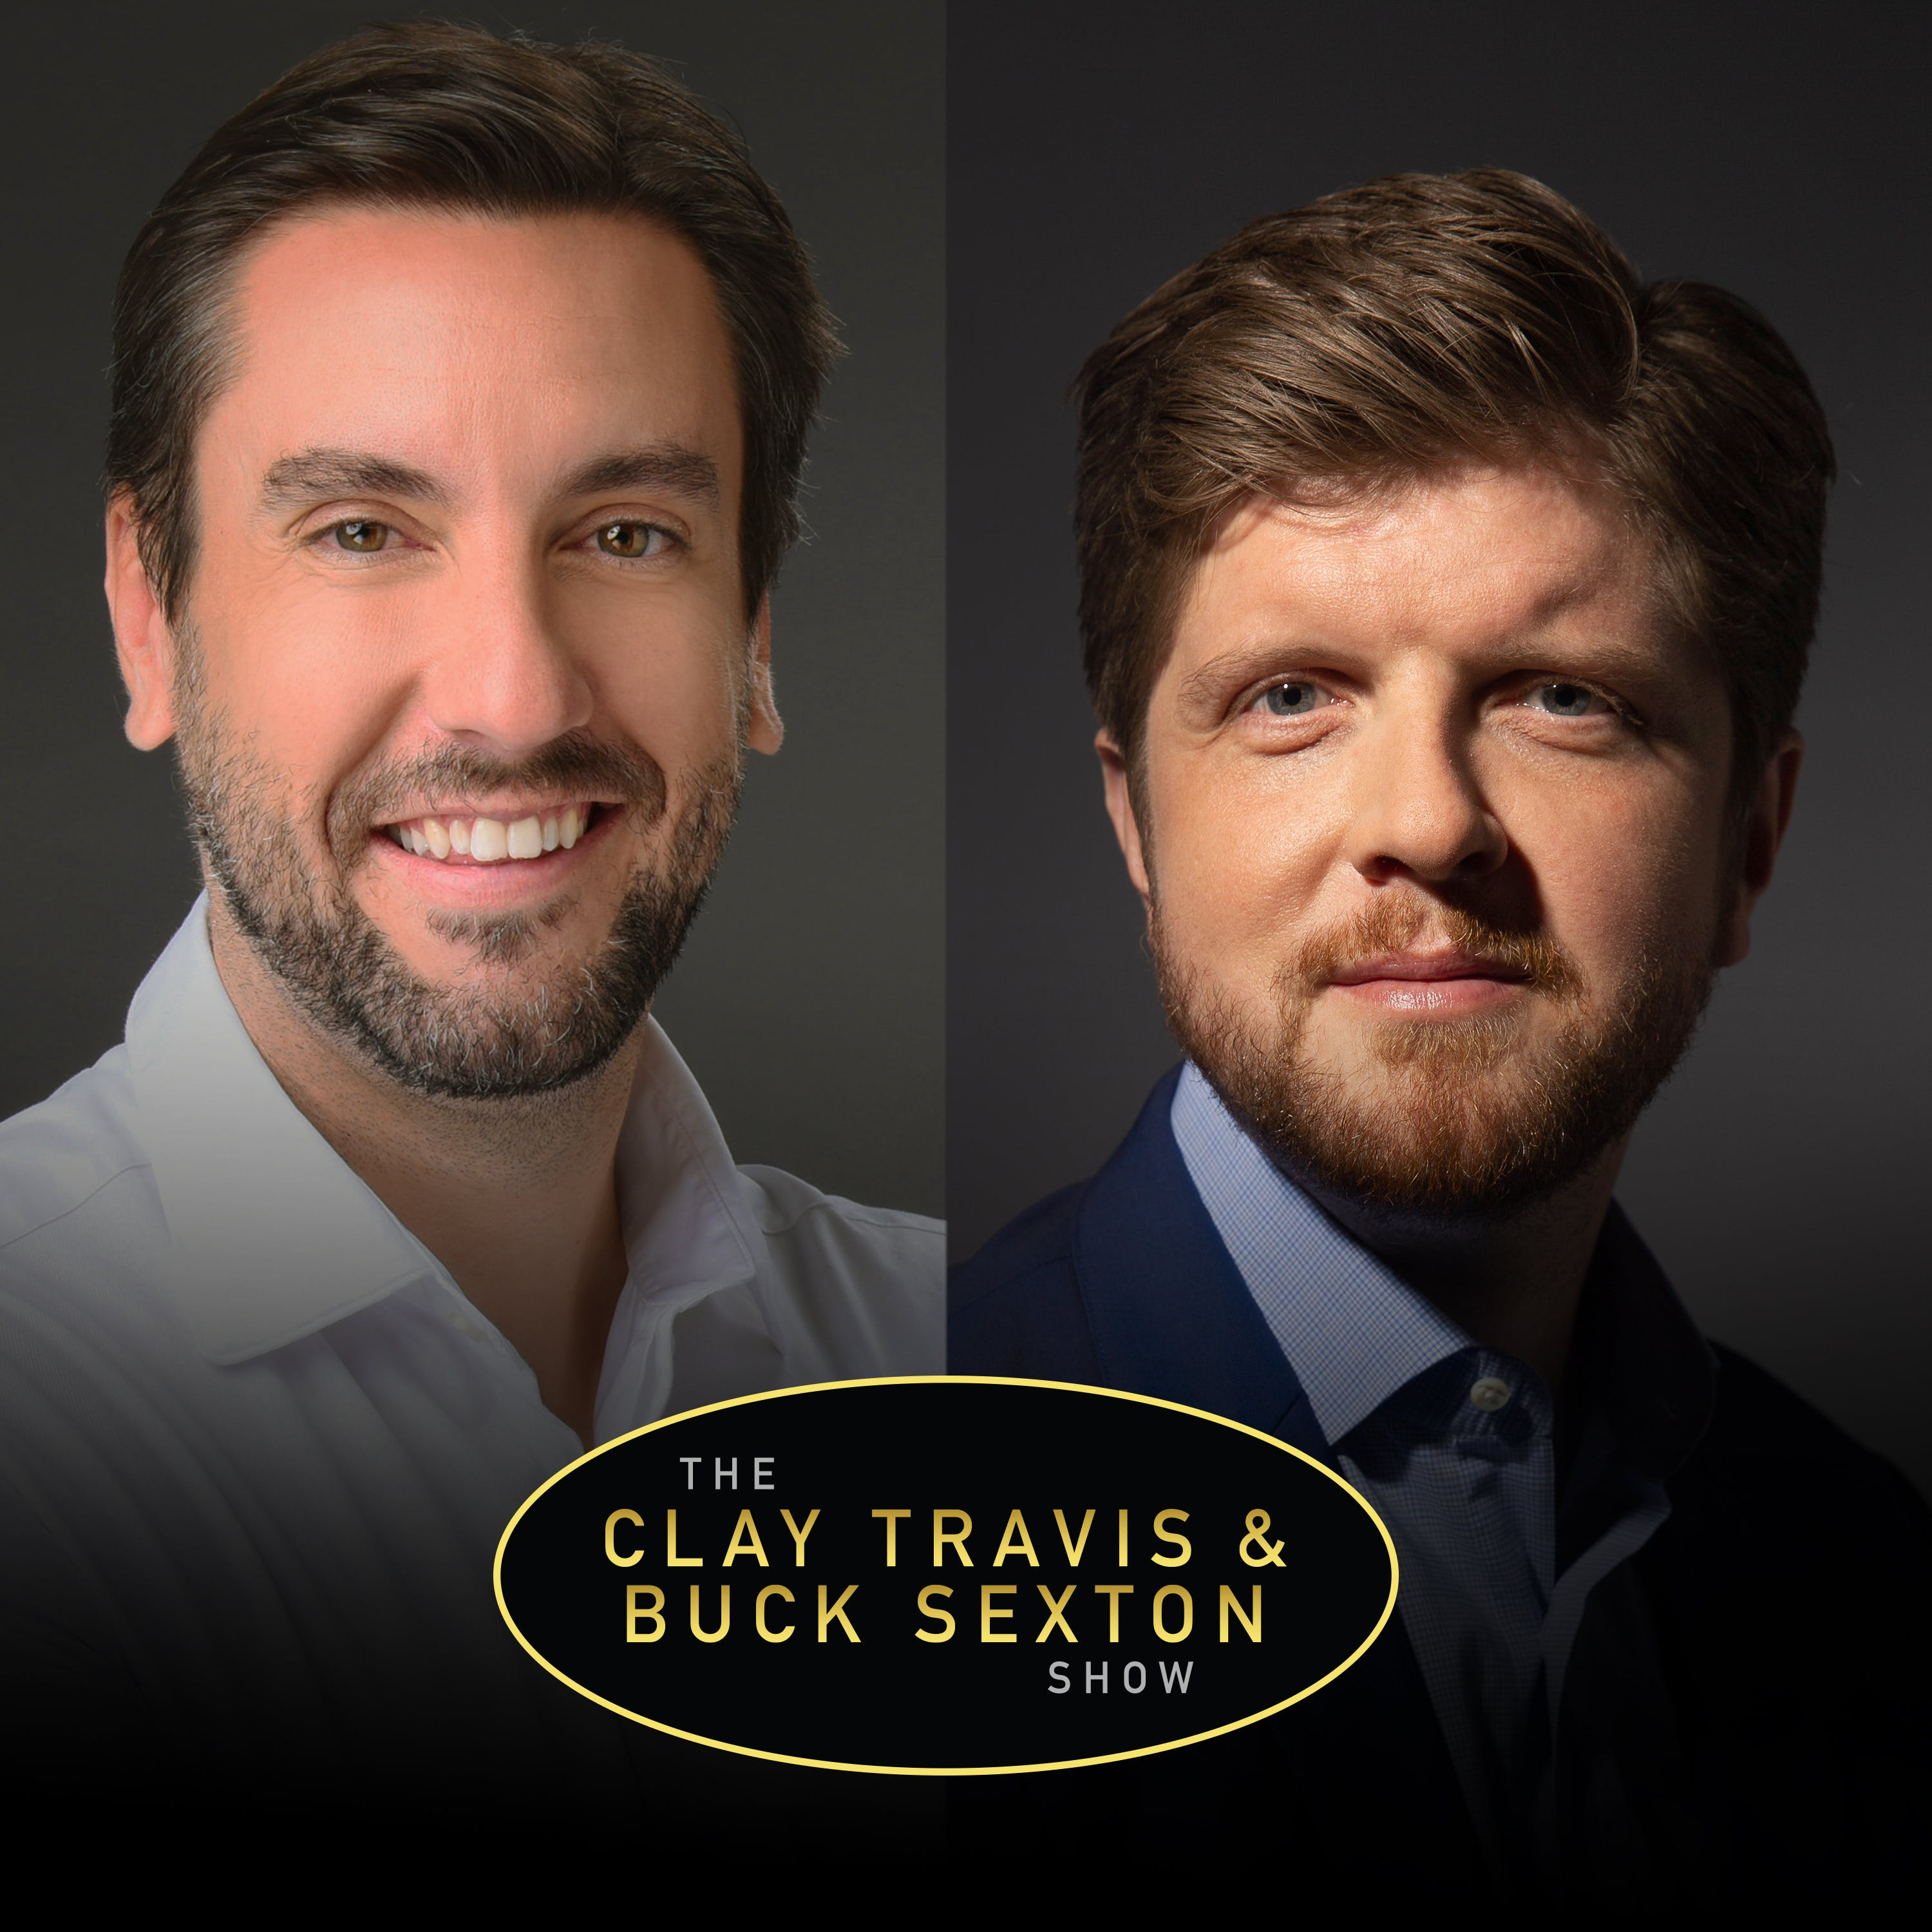 Clay Travis and Buck Sexton Show H1 – Jul 28 2021